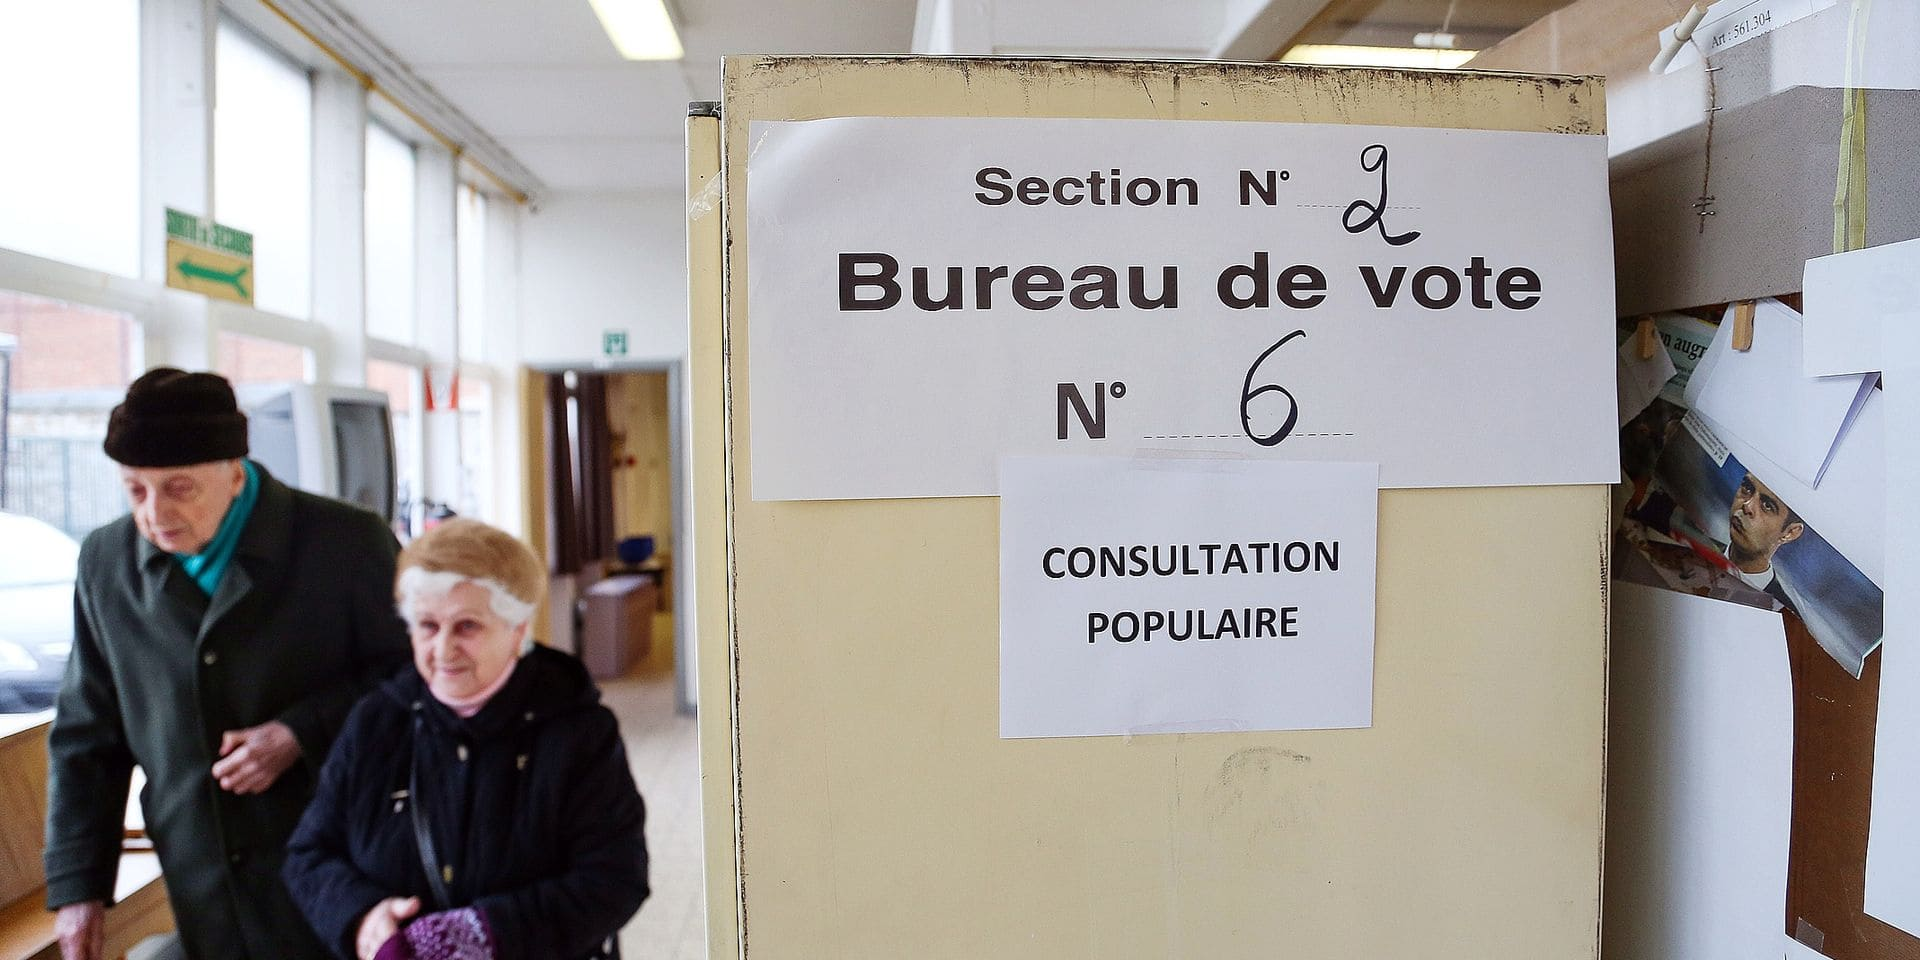 20150208 - NAMUR, BELGIUM: Illustration picture shows the polling station during a referendum on the plans to turn the 'Parc Leopold' park in Namur into a commercial center, Sunday 08 February 2015. The local population has protested various times against the plans. BELGA PHOTO BRUNO FAHY